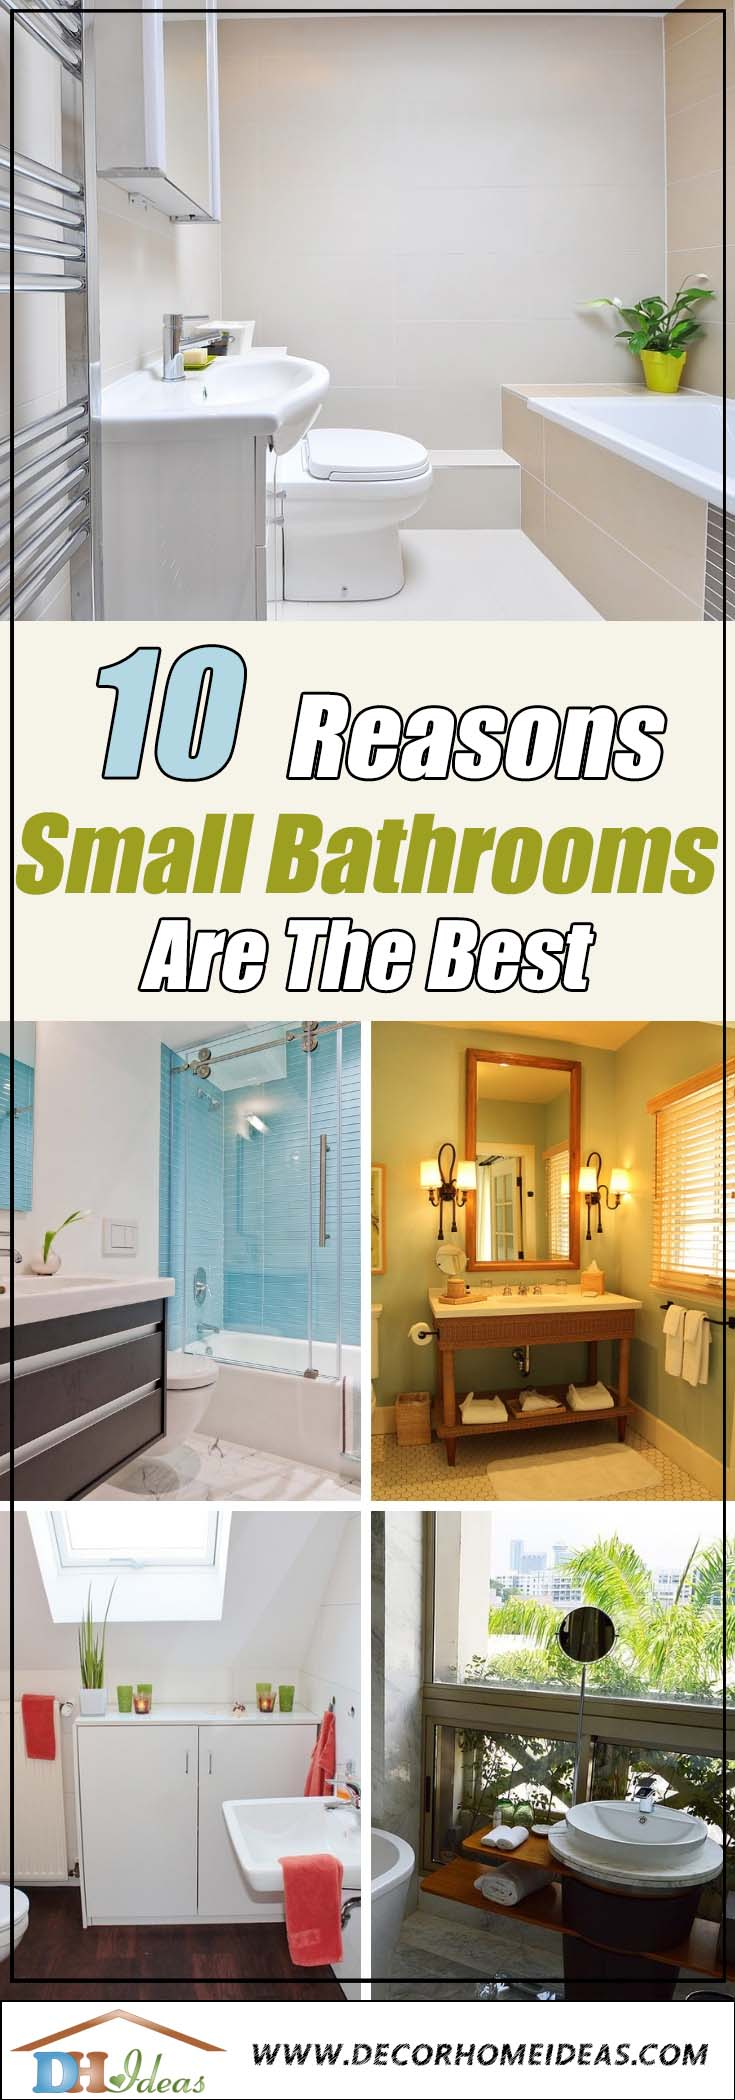 10 Undeniable Reasons Why Small Bathroom Is Best | Tips on decorating a small bathroom. #bathroom #decor #small #howto #furniture #decoratingideas #decorhomeideas